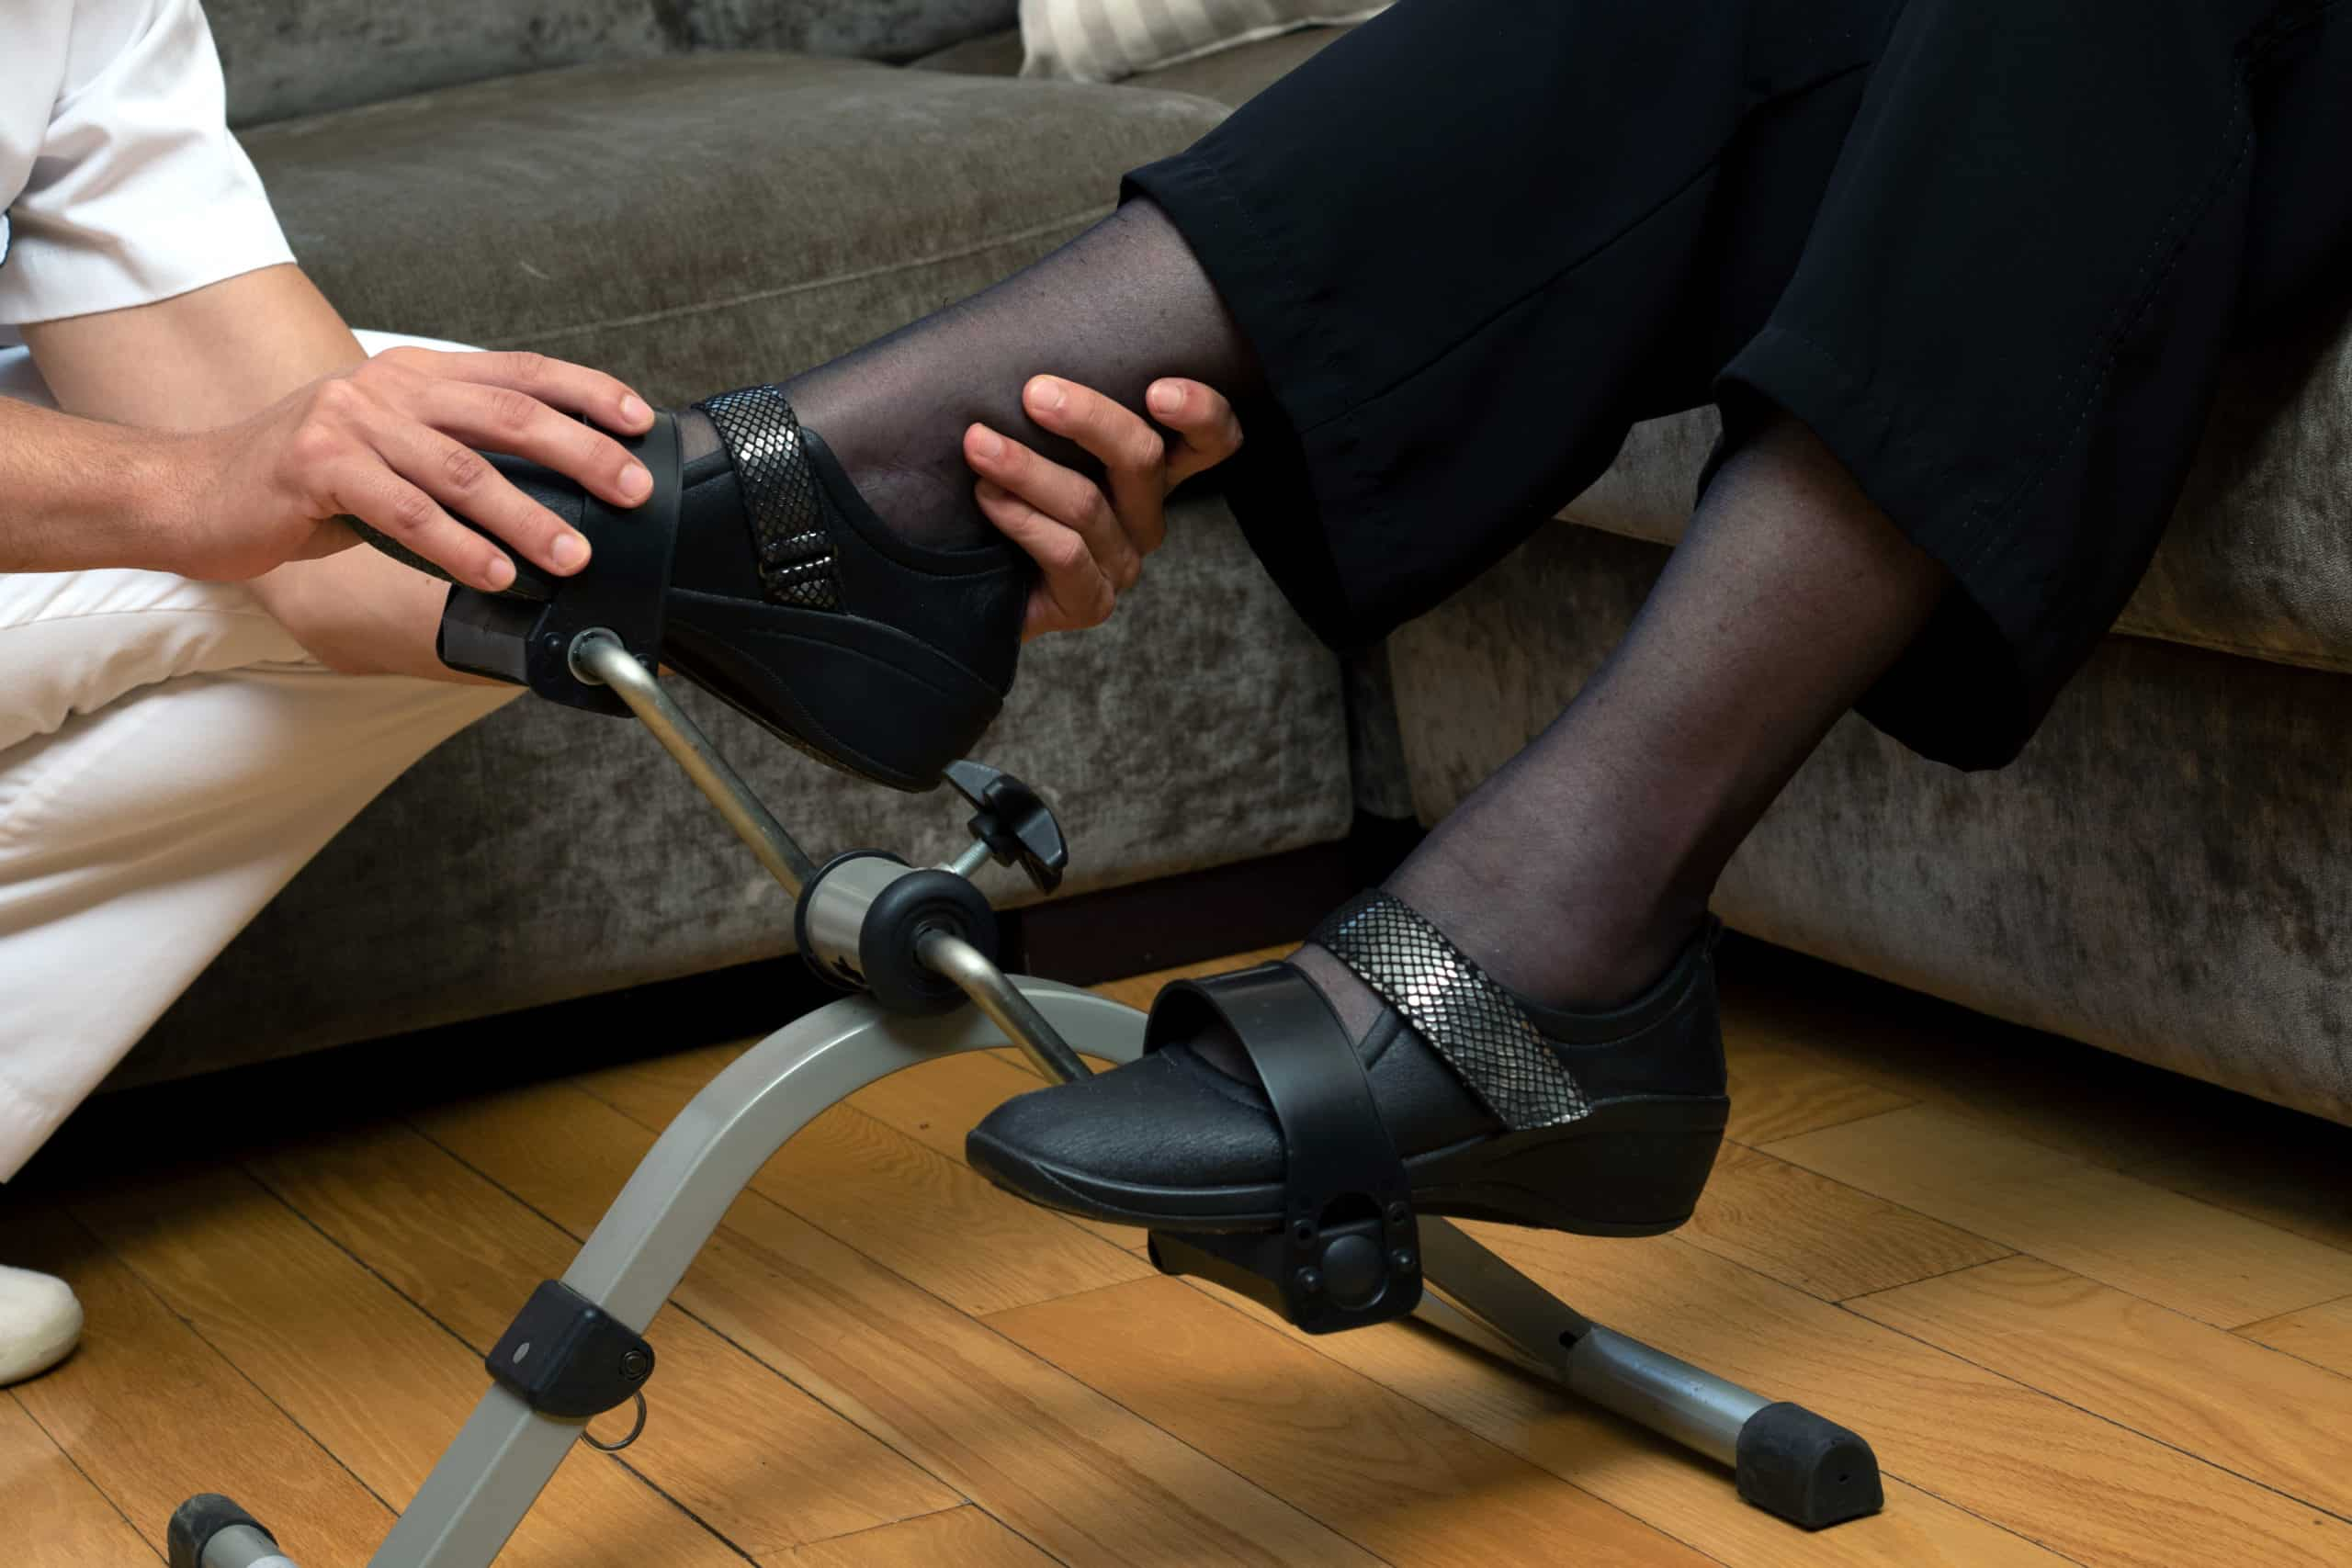 male therapist assisting senior woman's foot in stationary rehabilitation pedals.